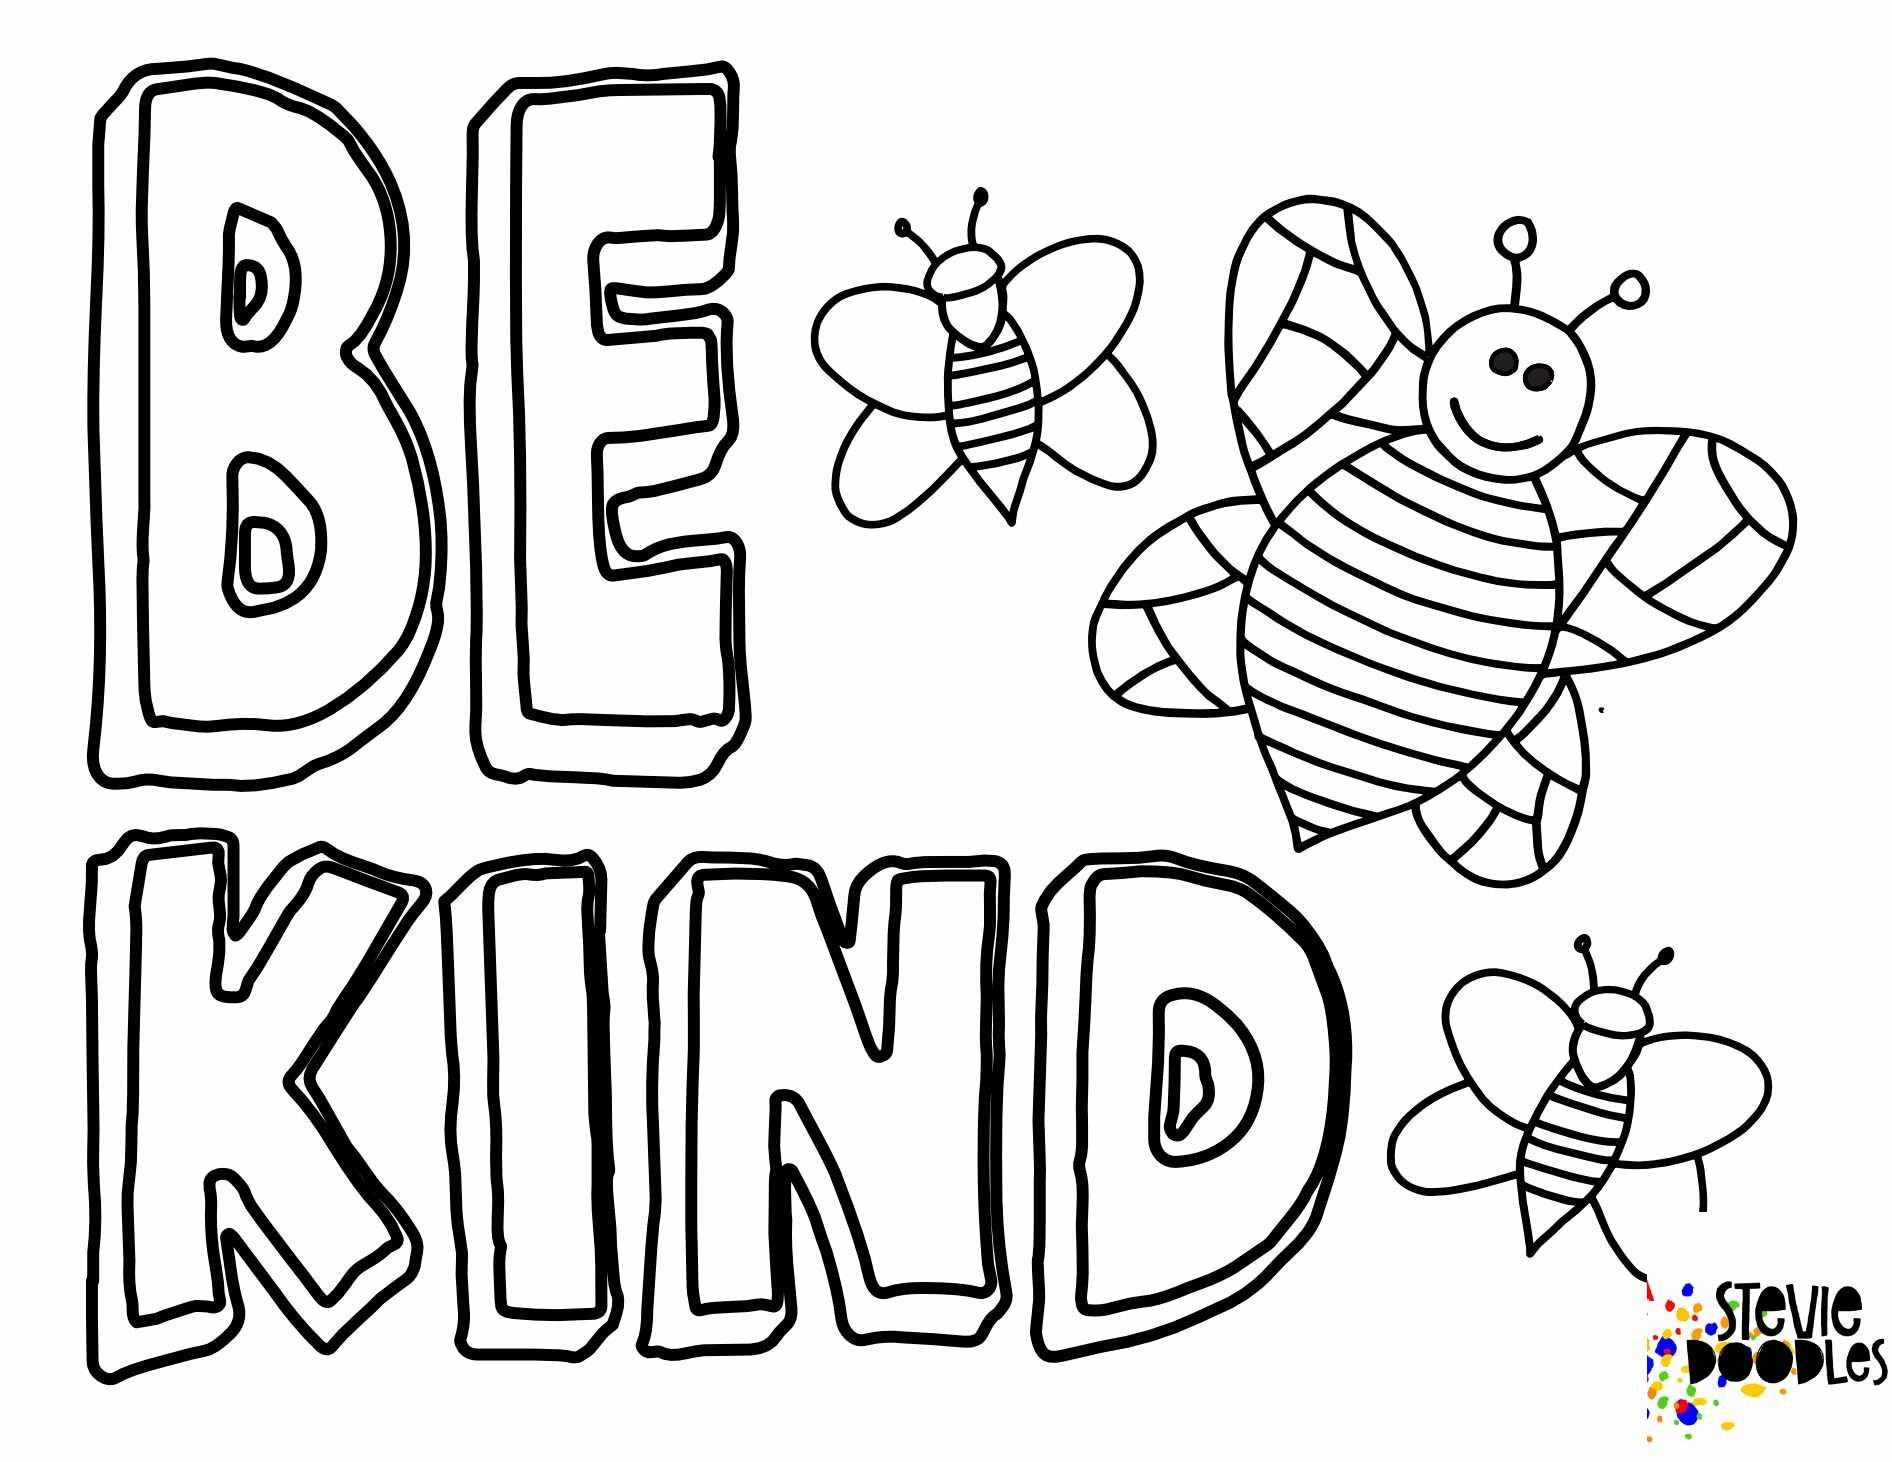 6 Free Be Kind Printable Coloring Pages Stevie Doodles Bee Coloring Pages Crayola Coloring Pages Free Kids Coloring Pages